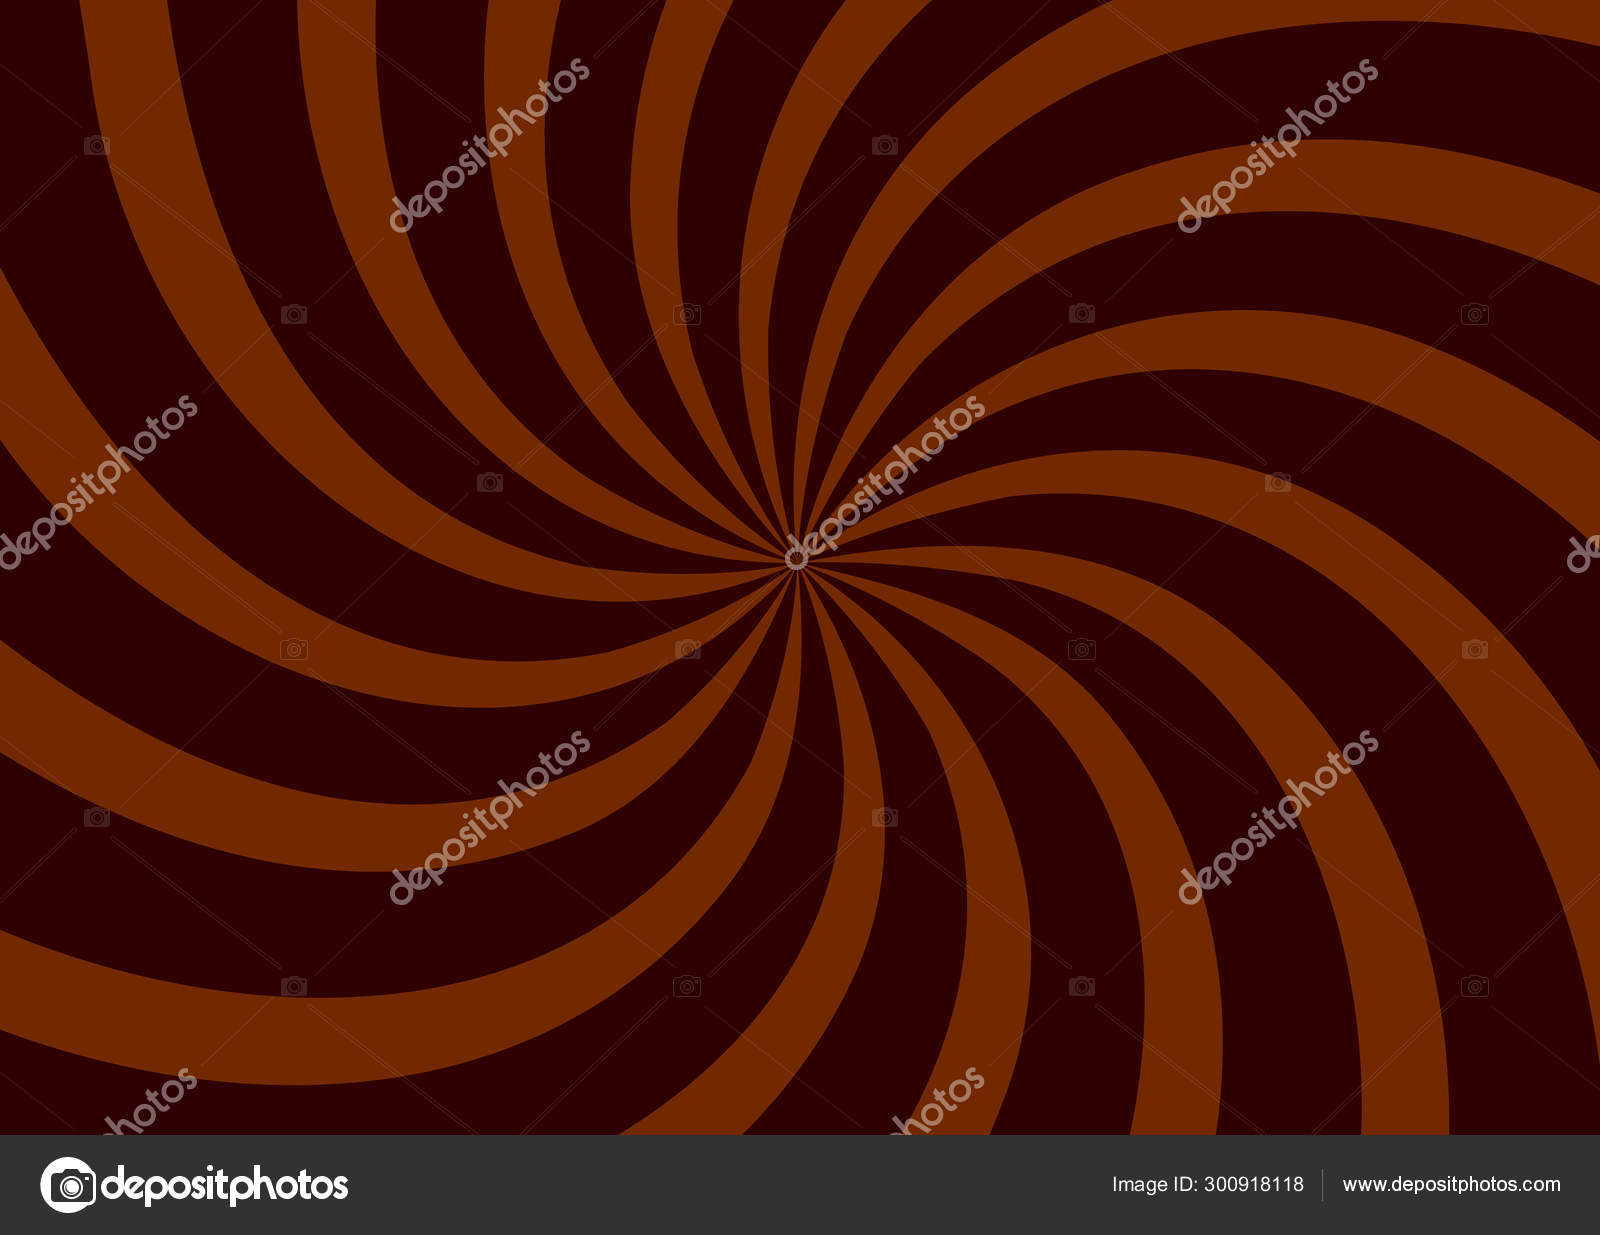 chocolate swirl background poster design template vector illustration stock vector c denis sined 300918118 https depositphotos com 300918118 stock illustration chocolate swirl background poster design html